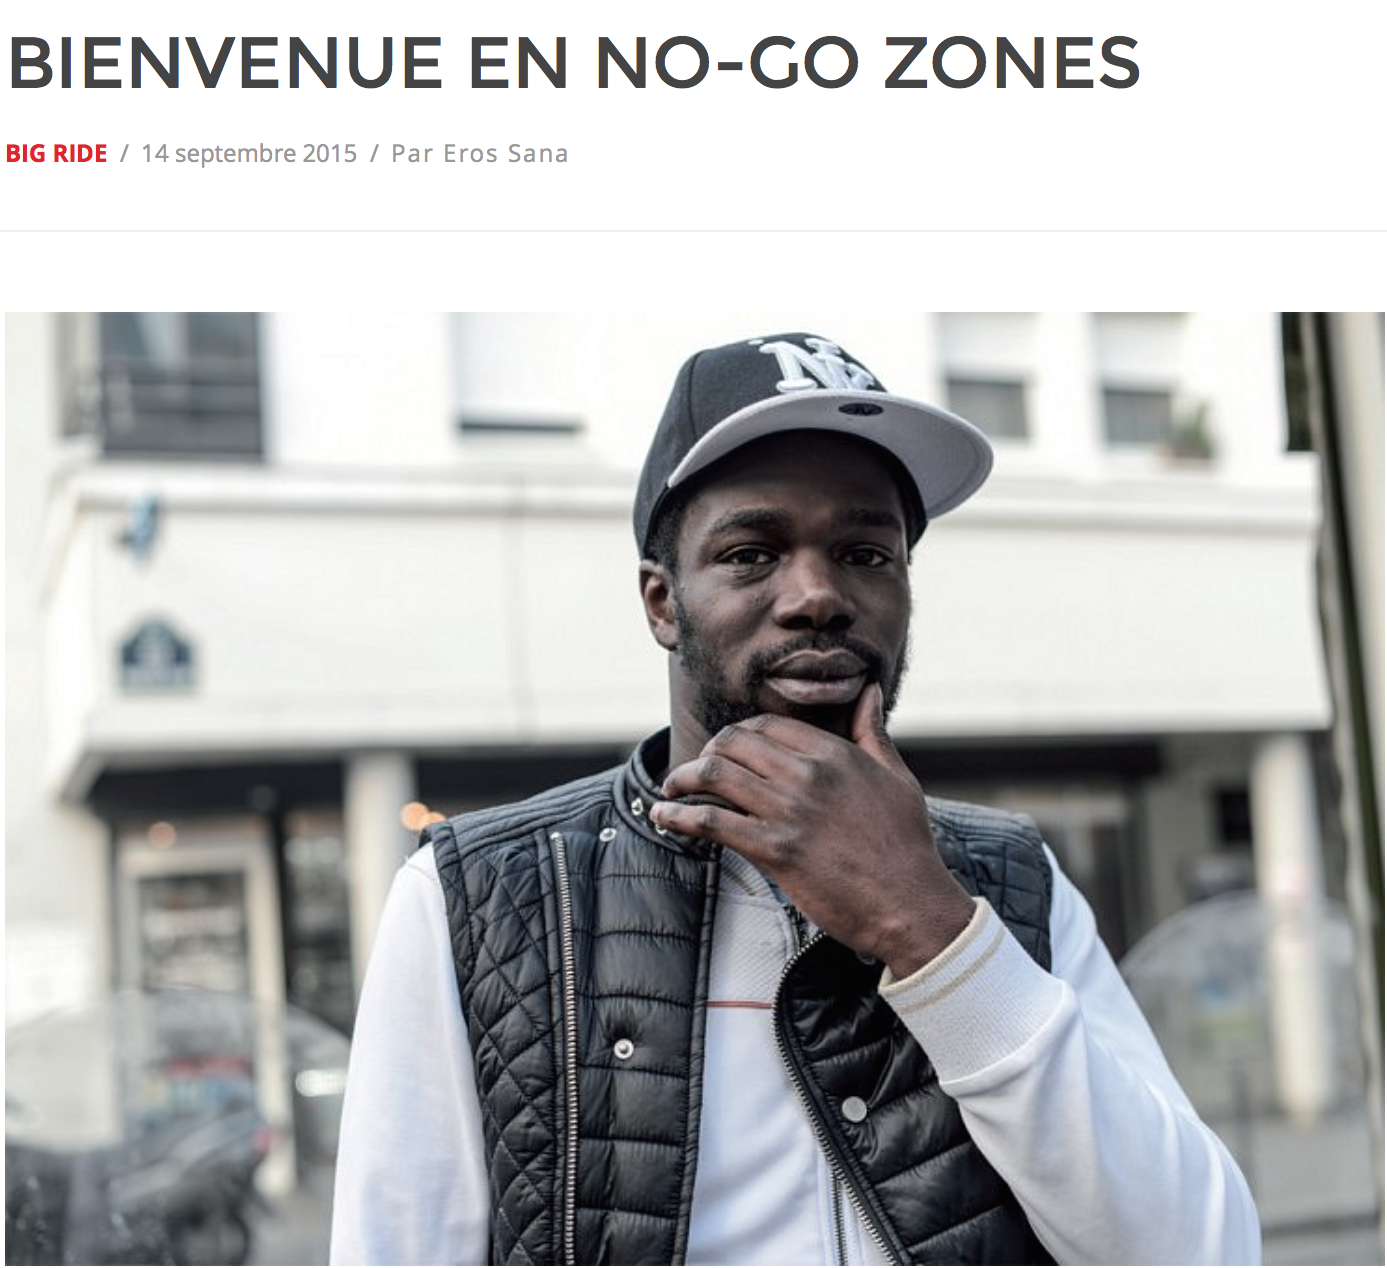 Bienvenue en No-Go zones